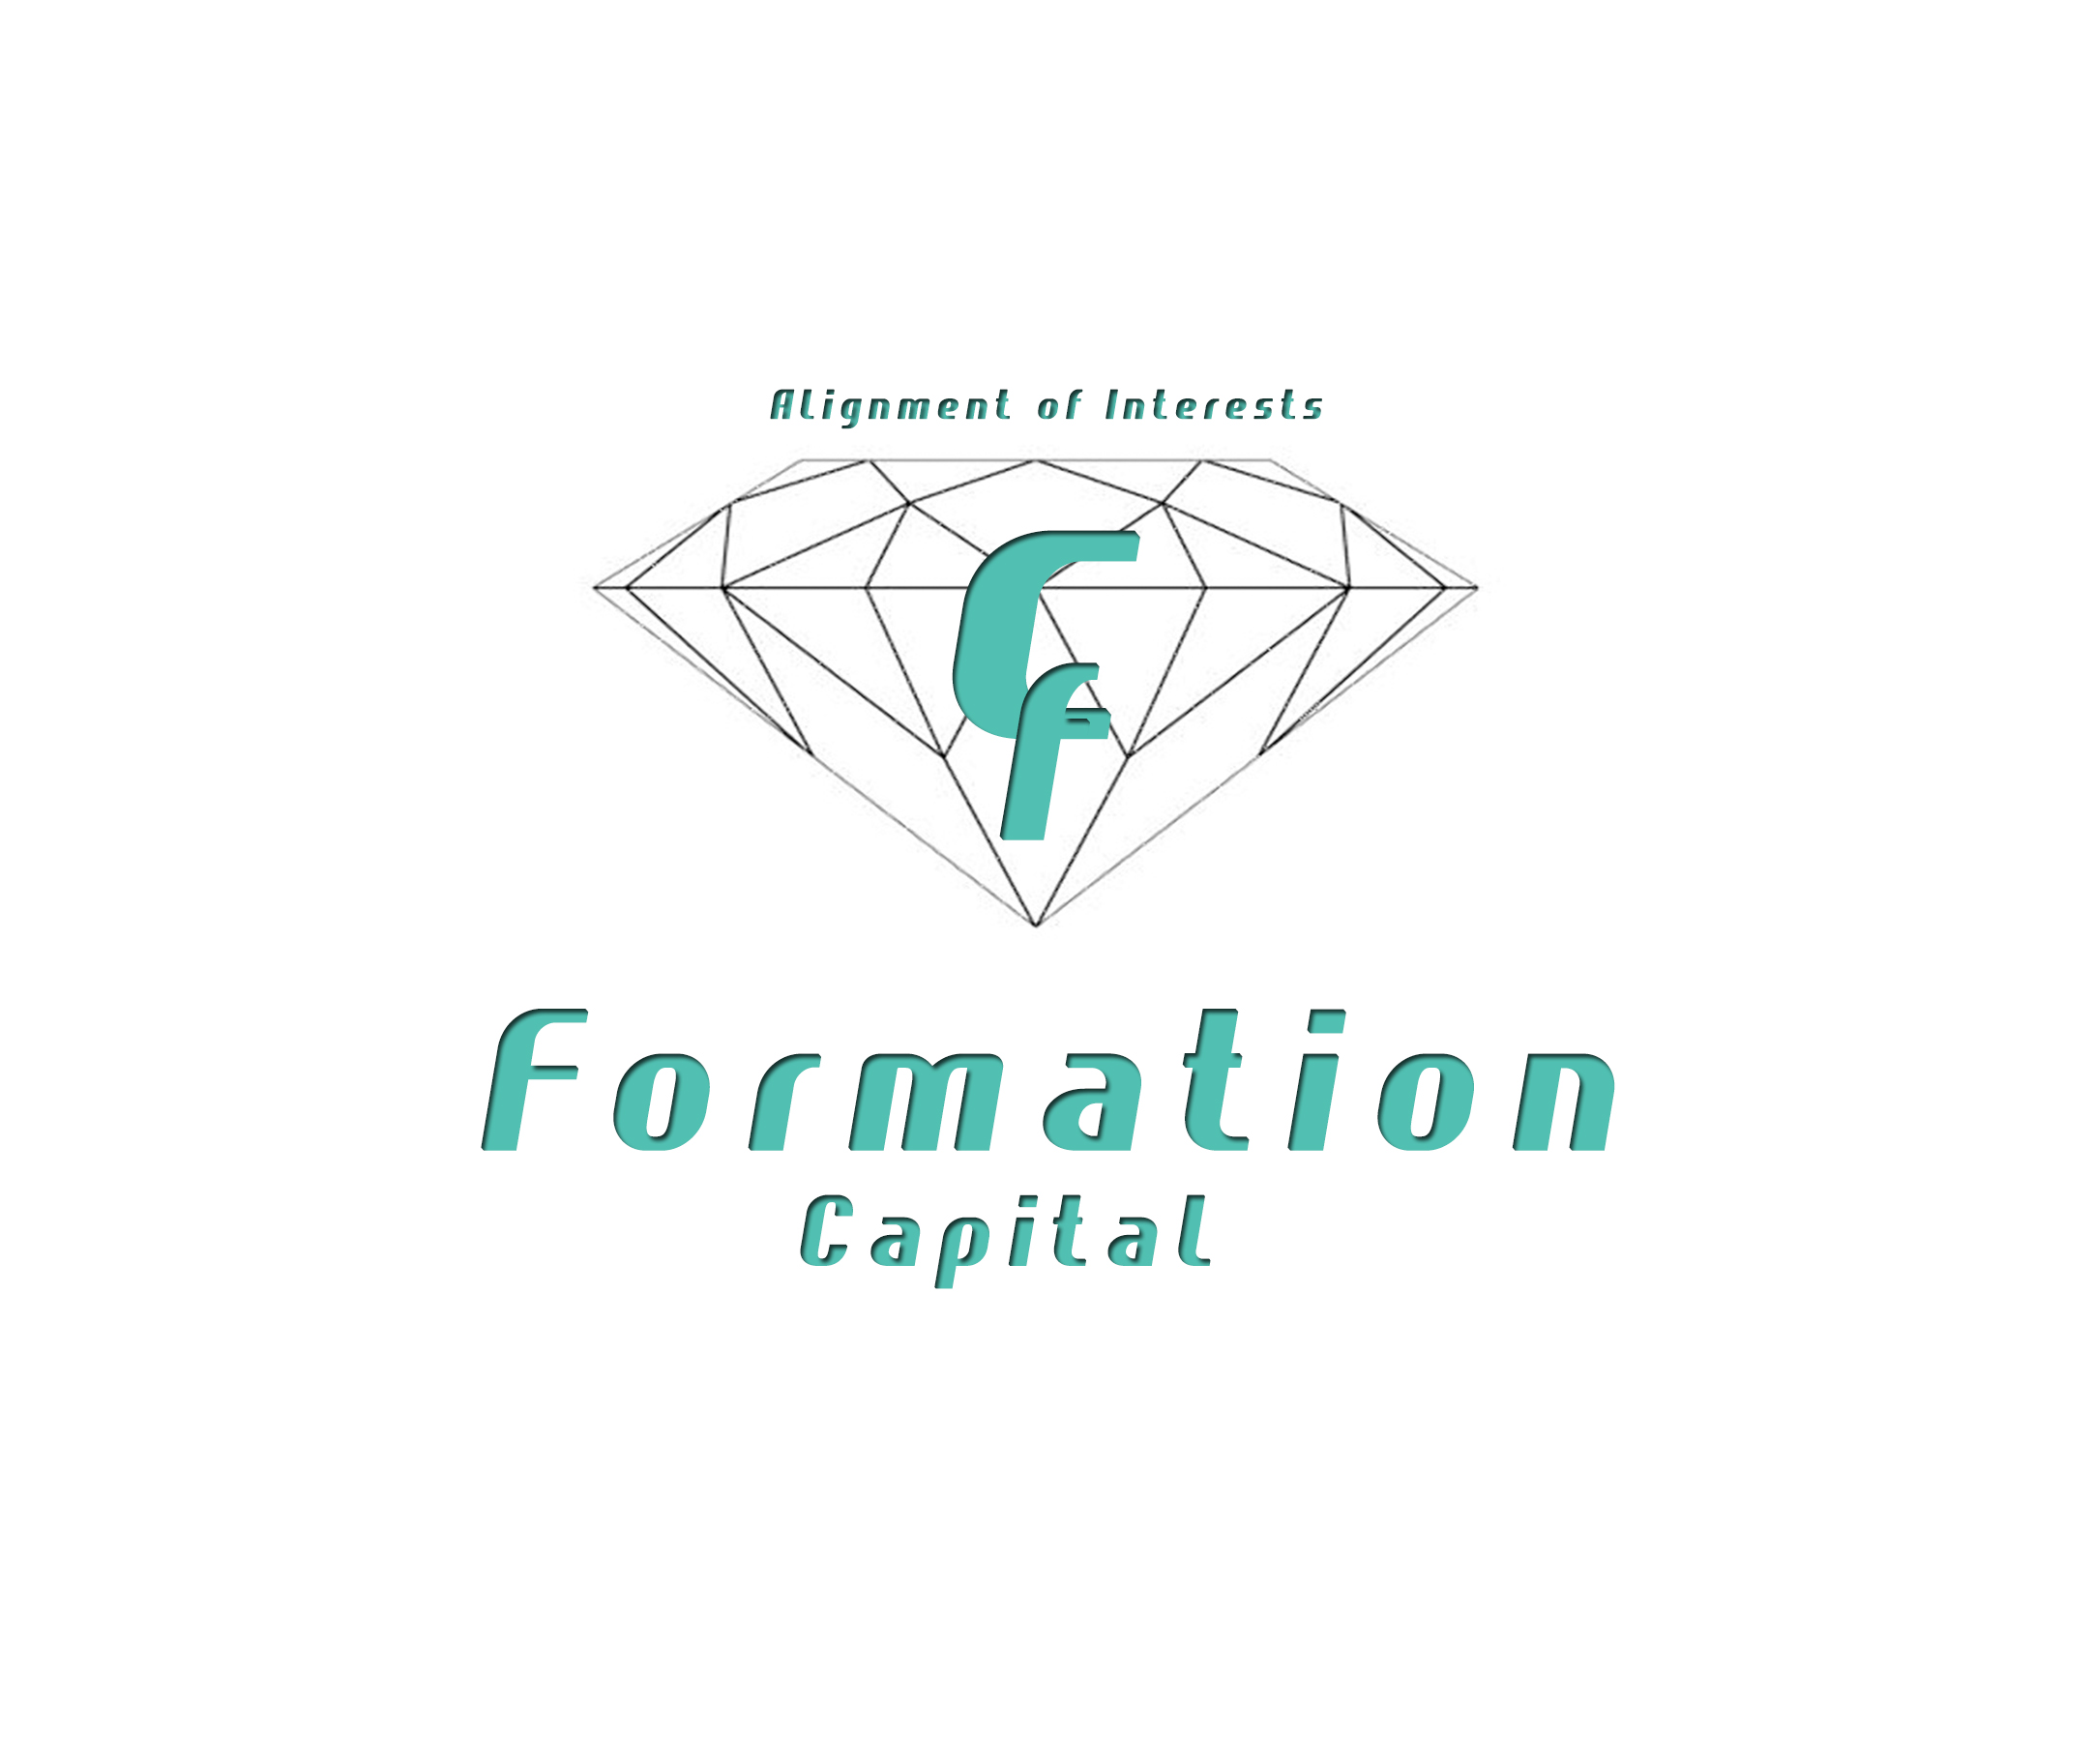 Logo Design by Thodoris Sairoglou - Entry No. 57 in the Logo Design Contest Inspiring Logo Design for Formation Capital.